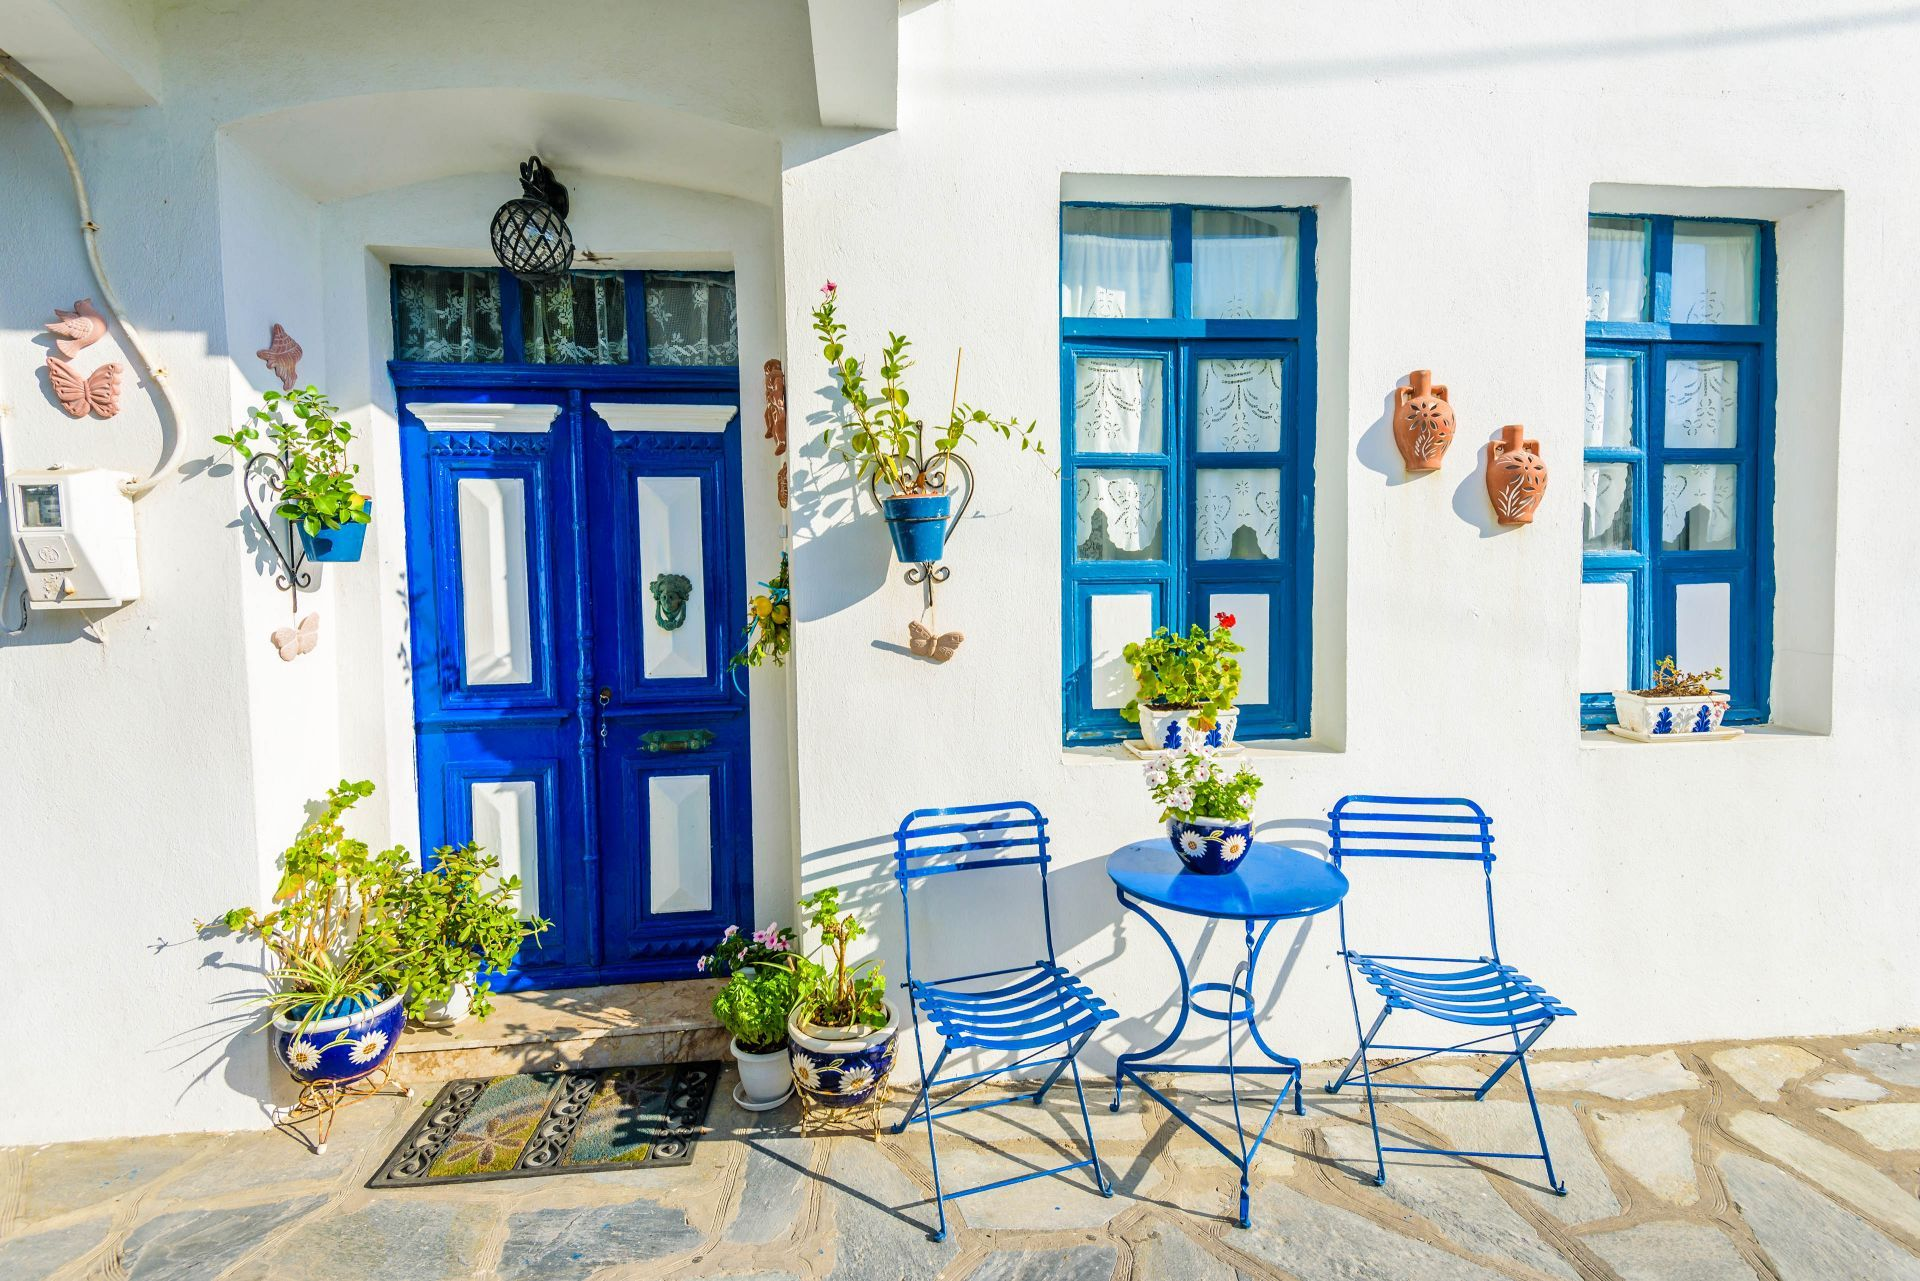 Accommodation and hotels in Nisyros